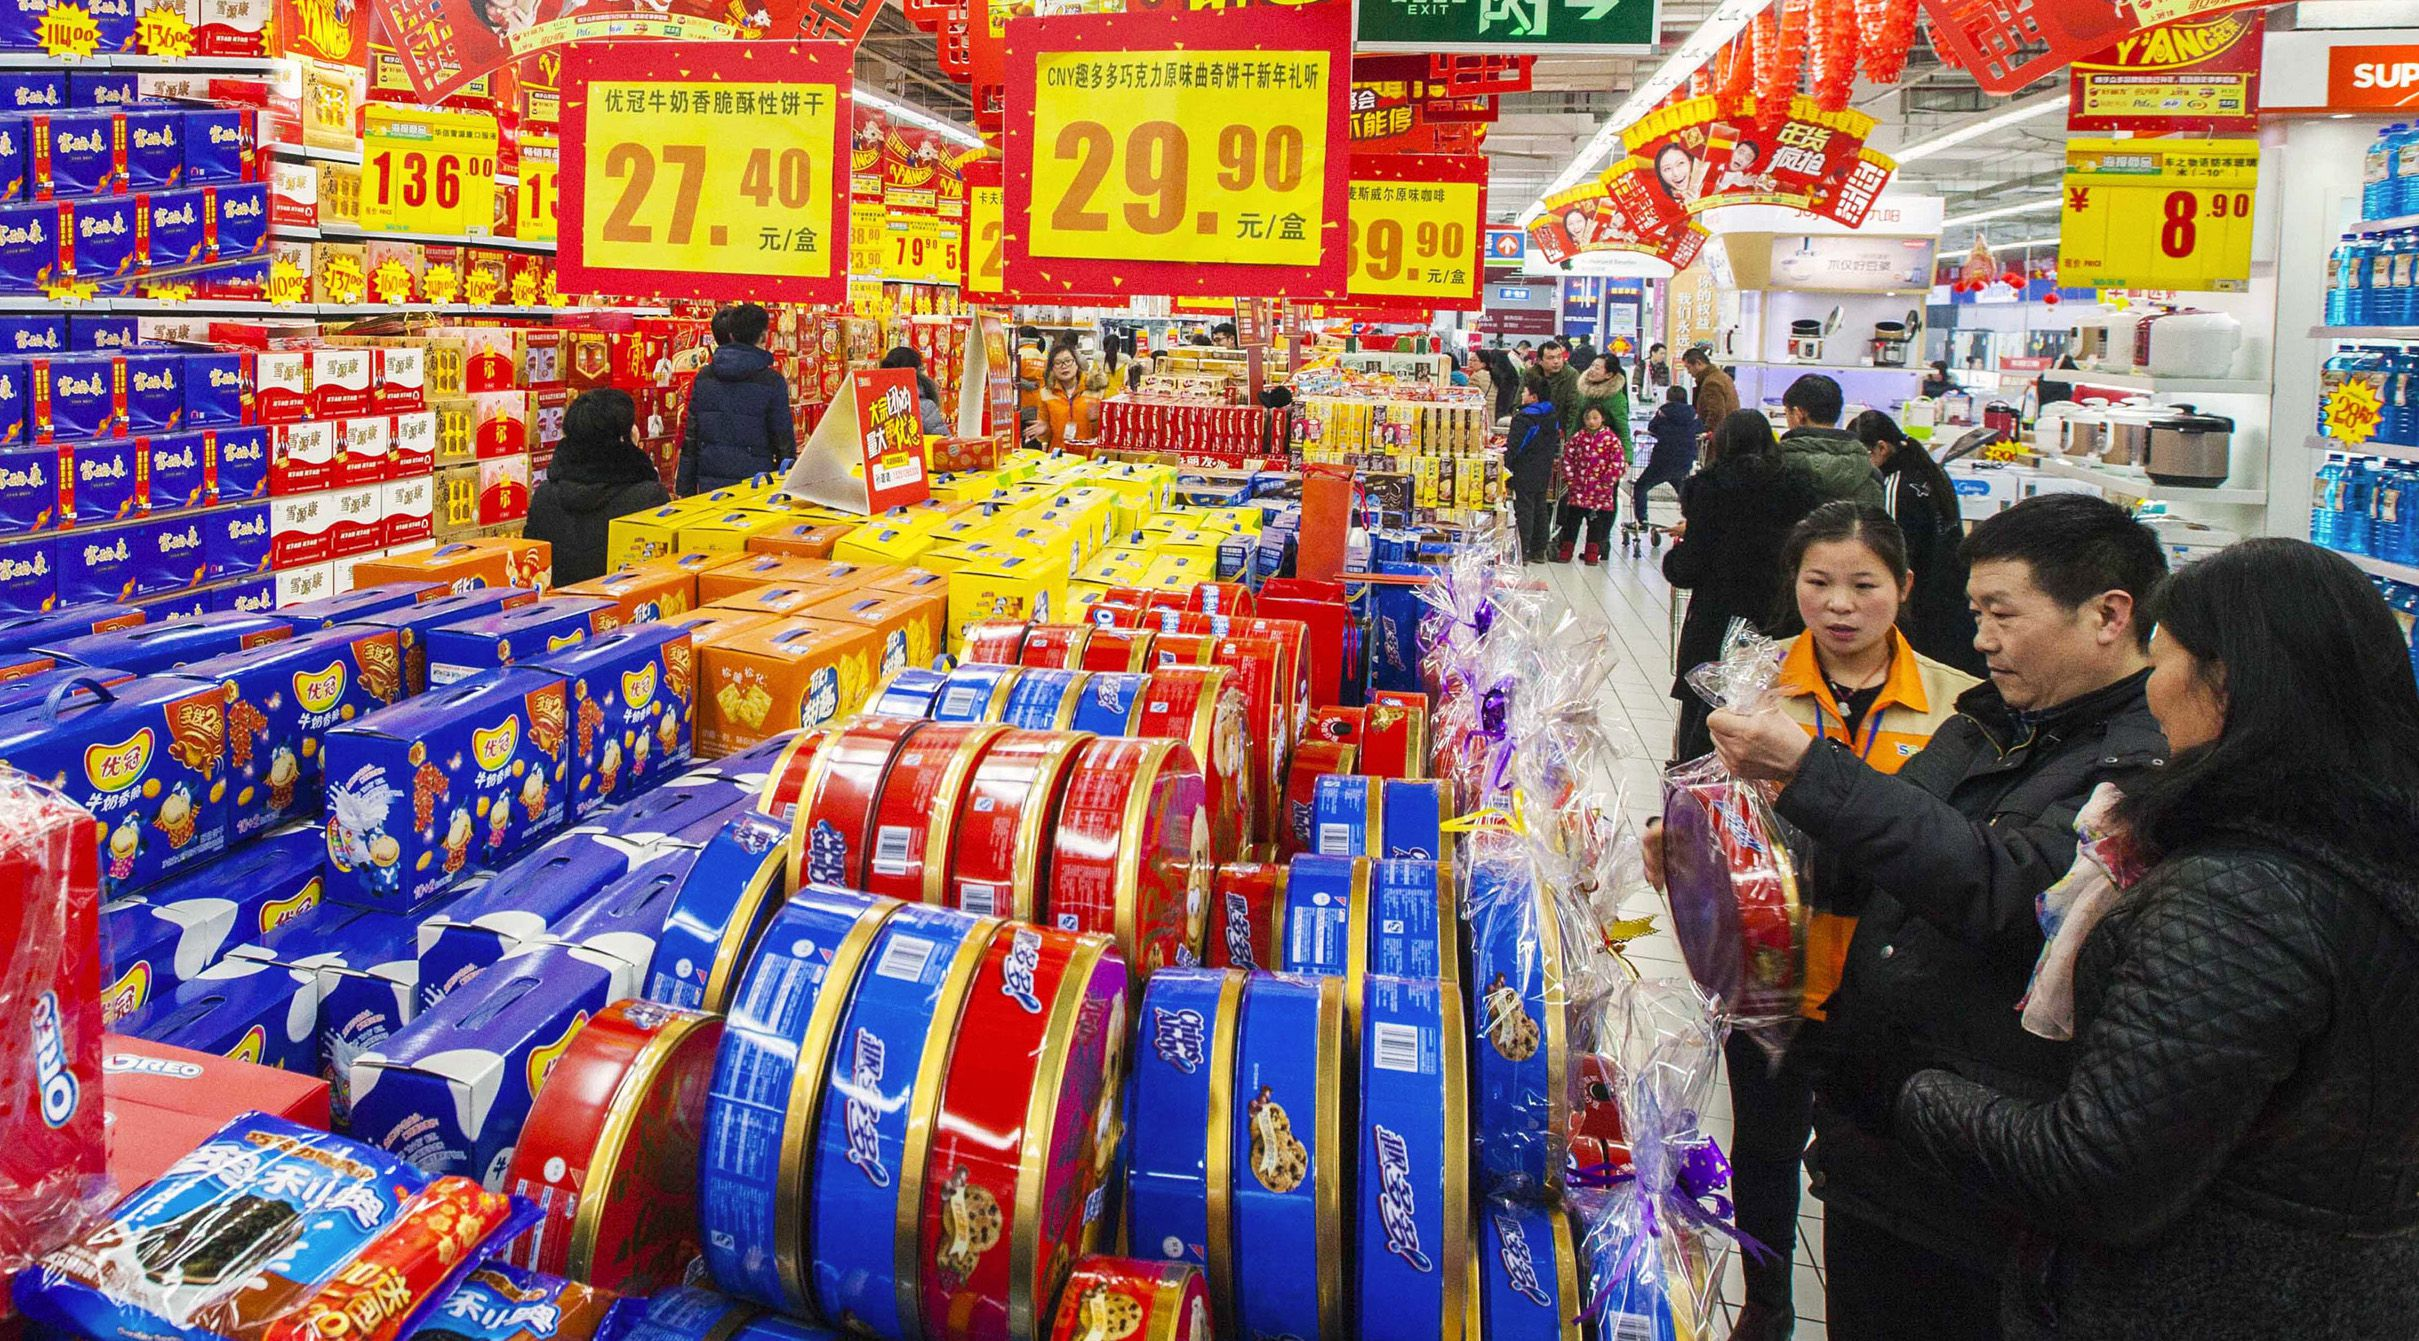 Customers select goods at a supermarket in Lianyungang, Jiangsu province February 9, 2015. China's consumer price inflation likely slowed to a five-year low in January due to falling oil prices and sluggish demand, while export growth was seen sagging, a Reuters poll showed, raising questions whether more policy stimulus is needed to combat deflationary pressures. REUTERS/Stringer